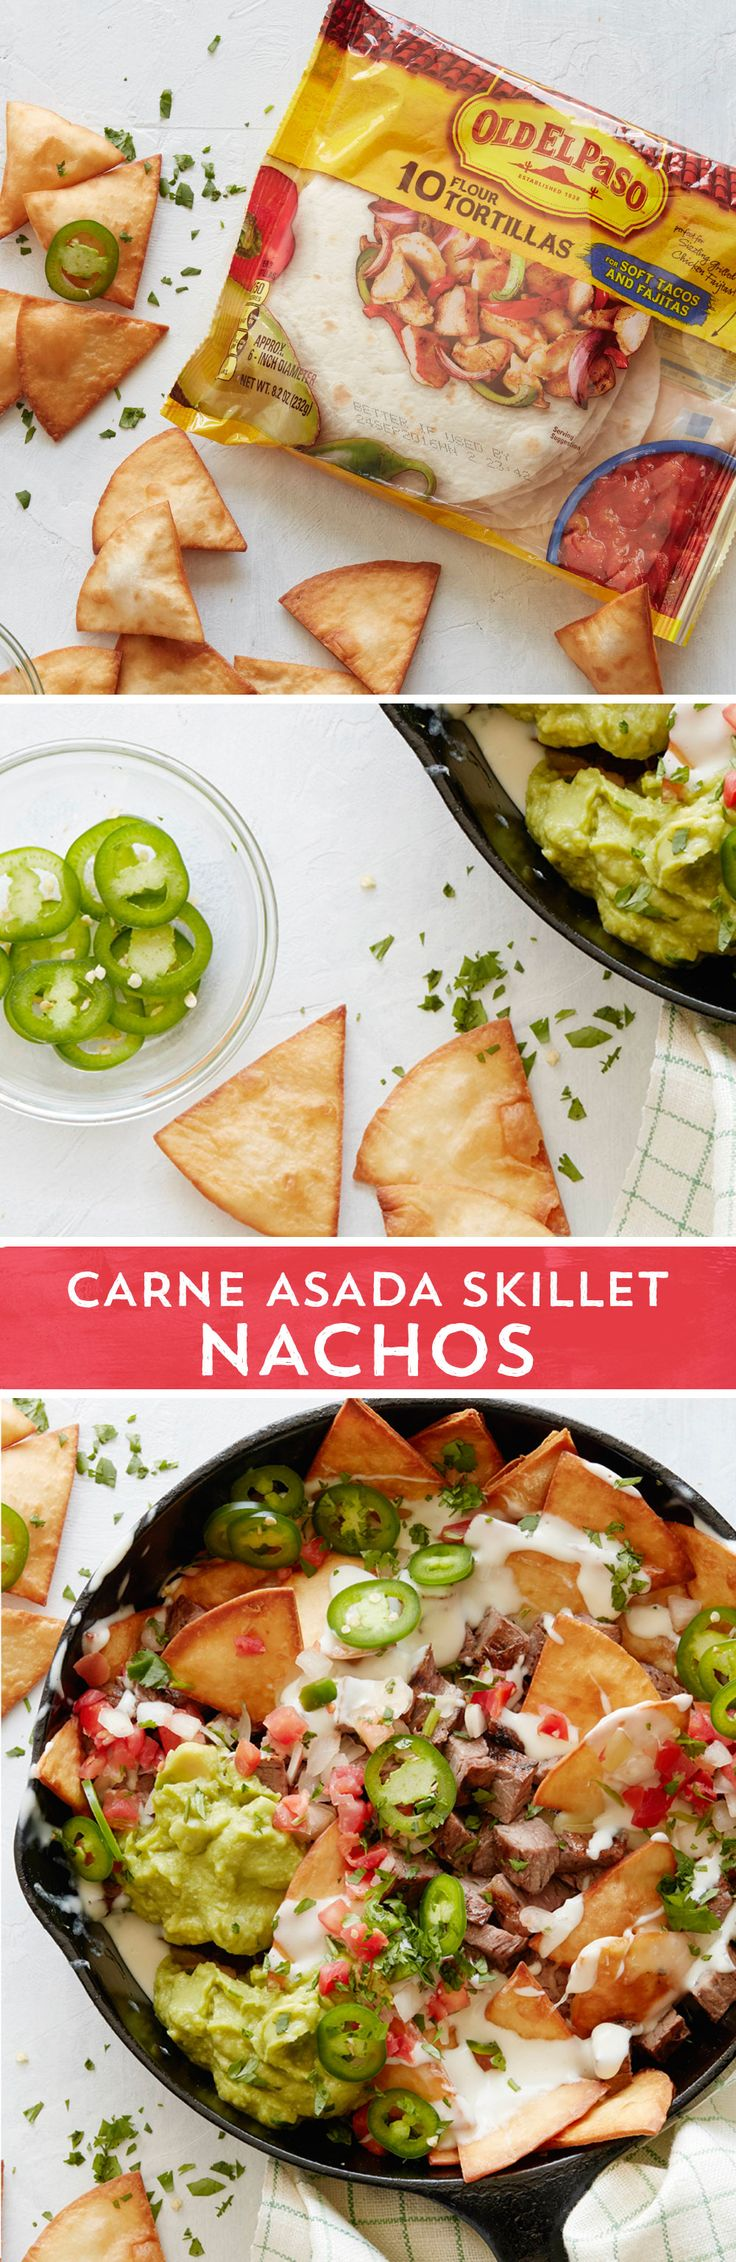 Craving nachos? These Carne Asada Skillet Nachos from @whatsgabycookin are just what you need! Packed with freshly fired tortilla chips, savory carne asada, cool guacamole and melty cheese - these bring all the flavors you crave!